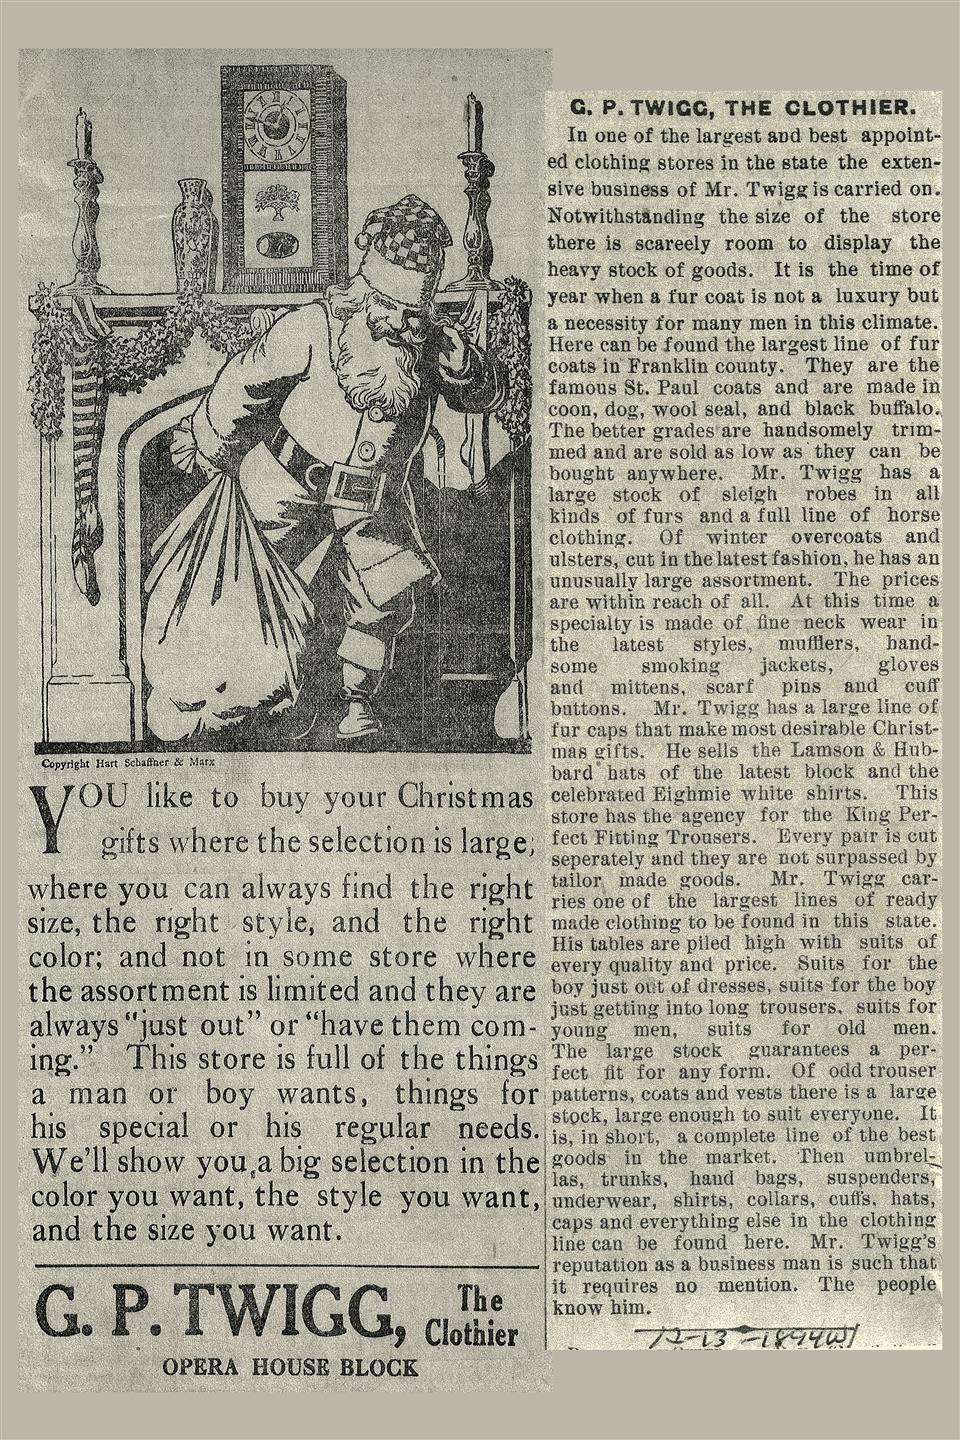 a christmas-themed newspaper advertisement for twiggs, featuring santa claus